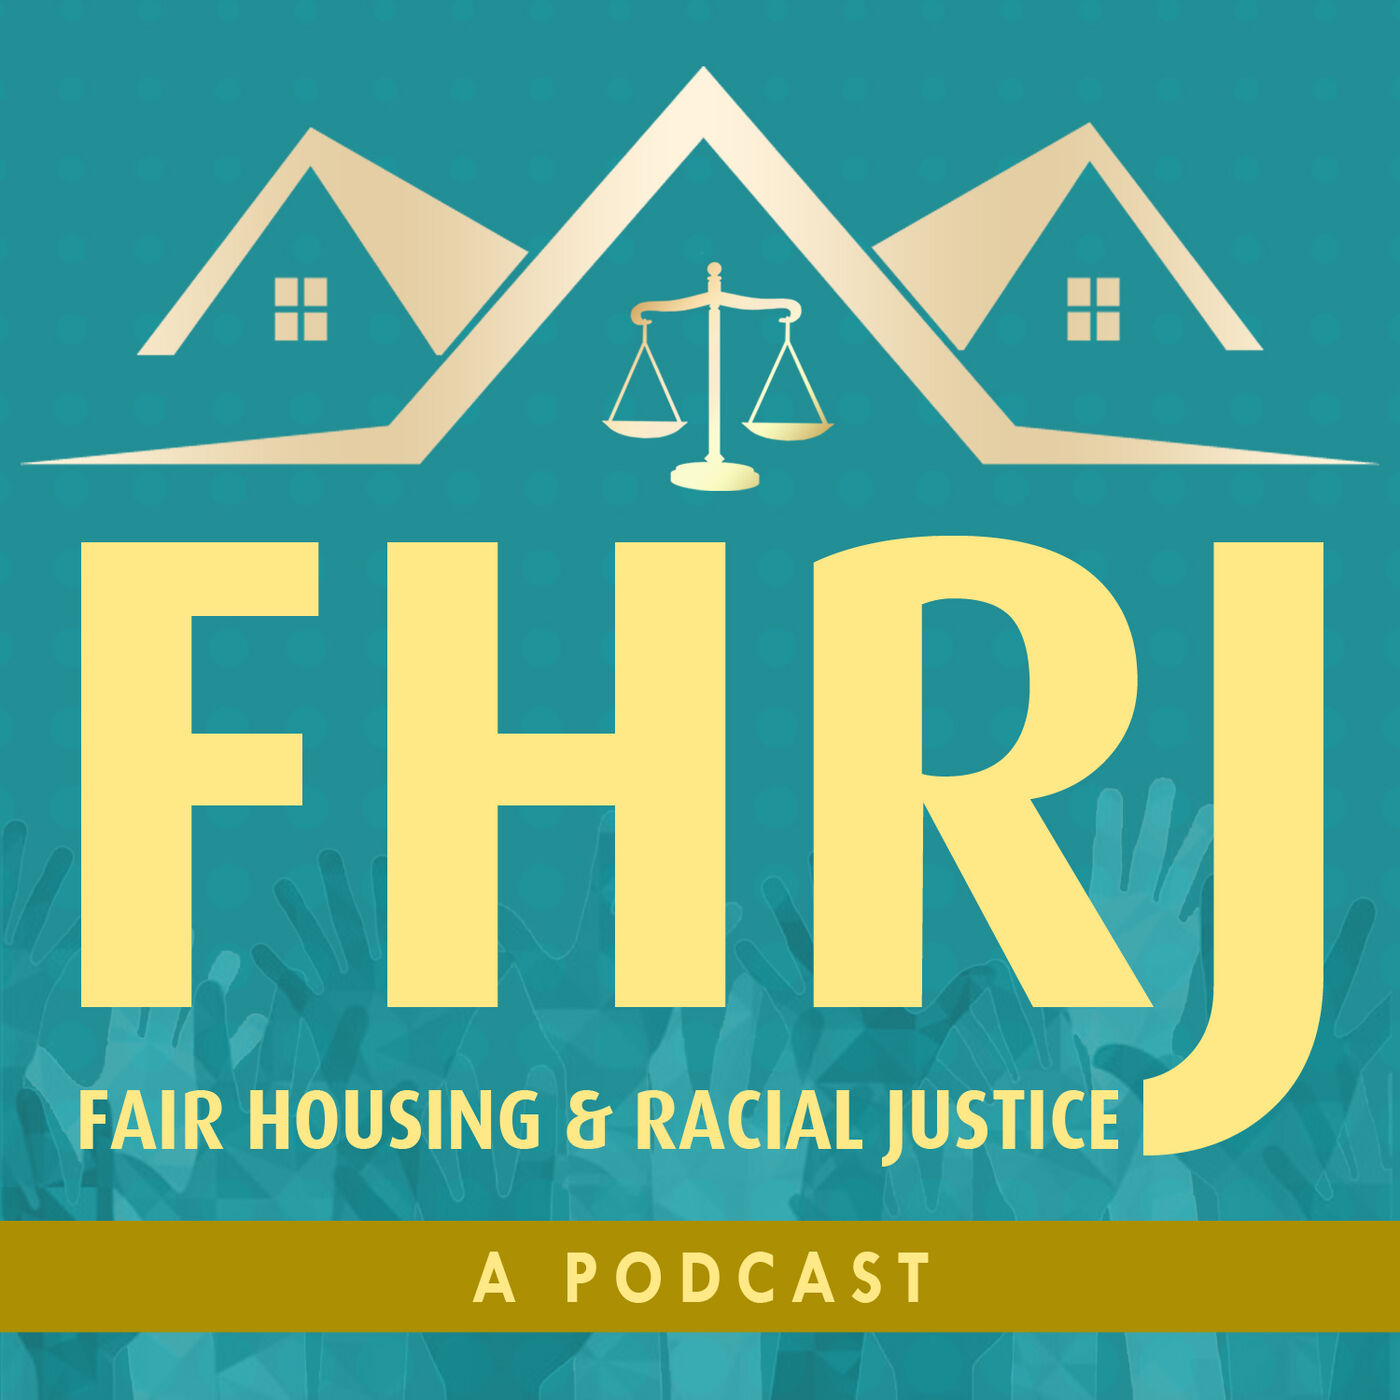 FHRJ Episode 8: Interview with Ashley Fox, Deputy Chief of Staff for Council Member Elissa Silverman